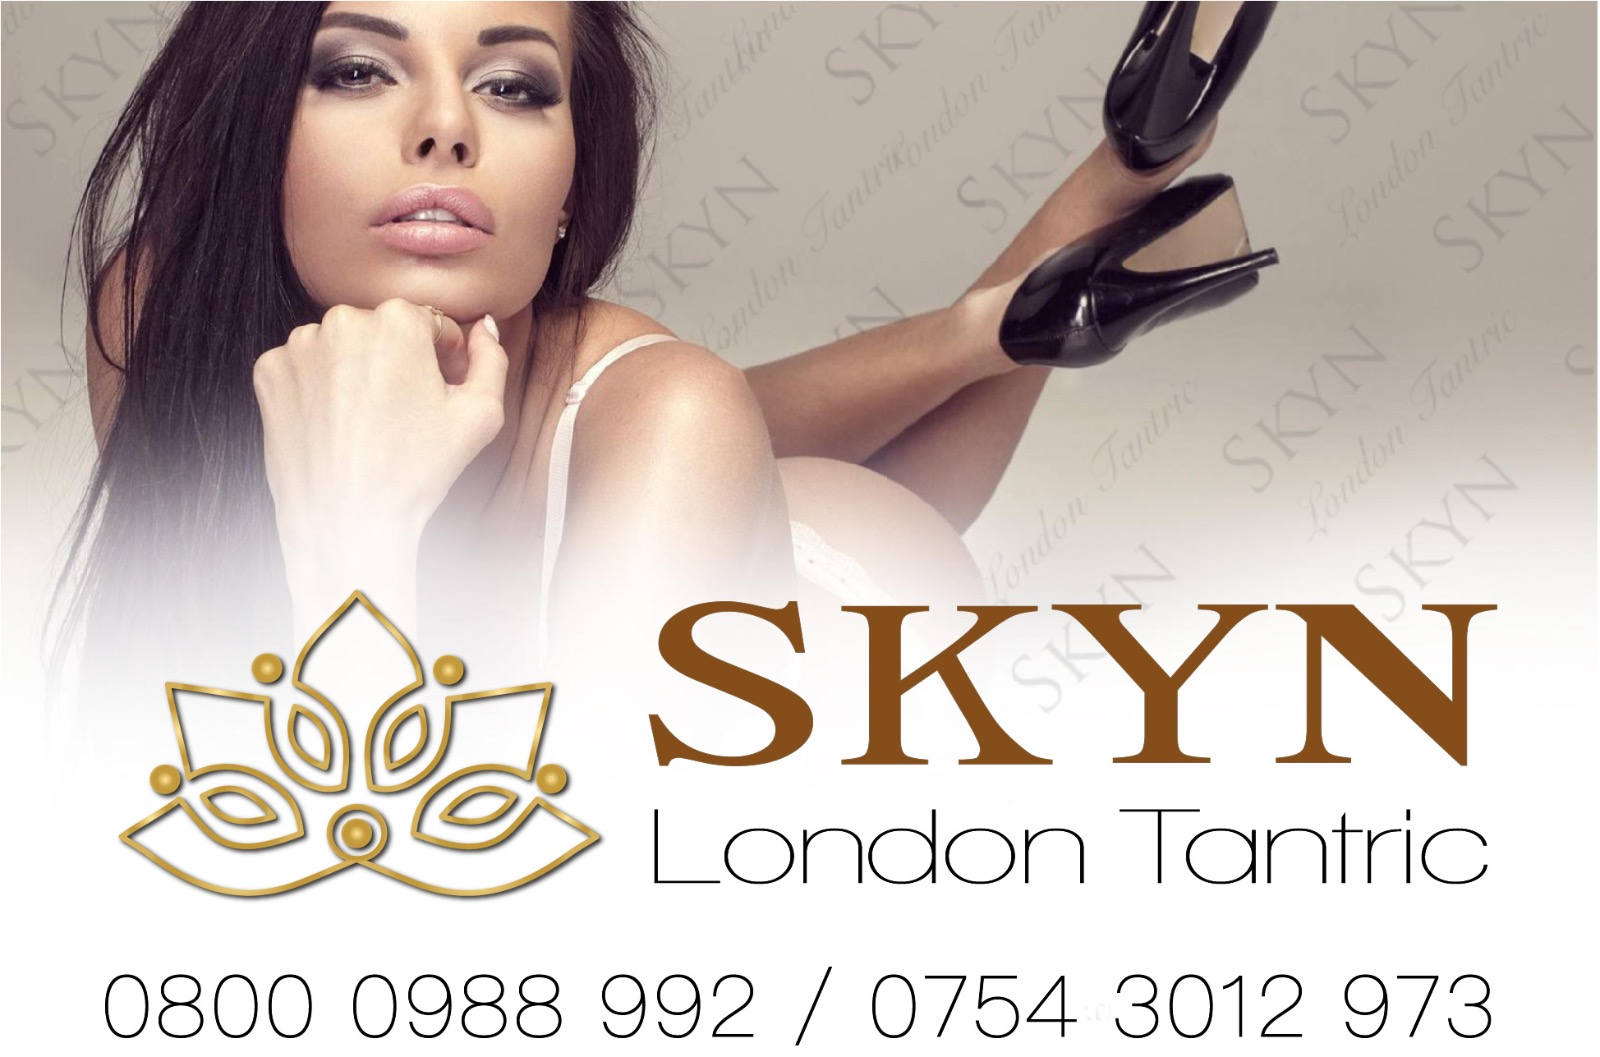 Skyn Tantric Massage London, UK